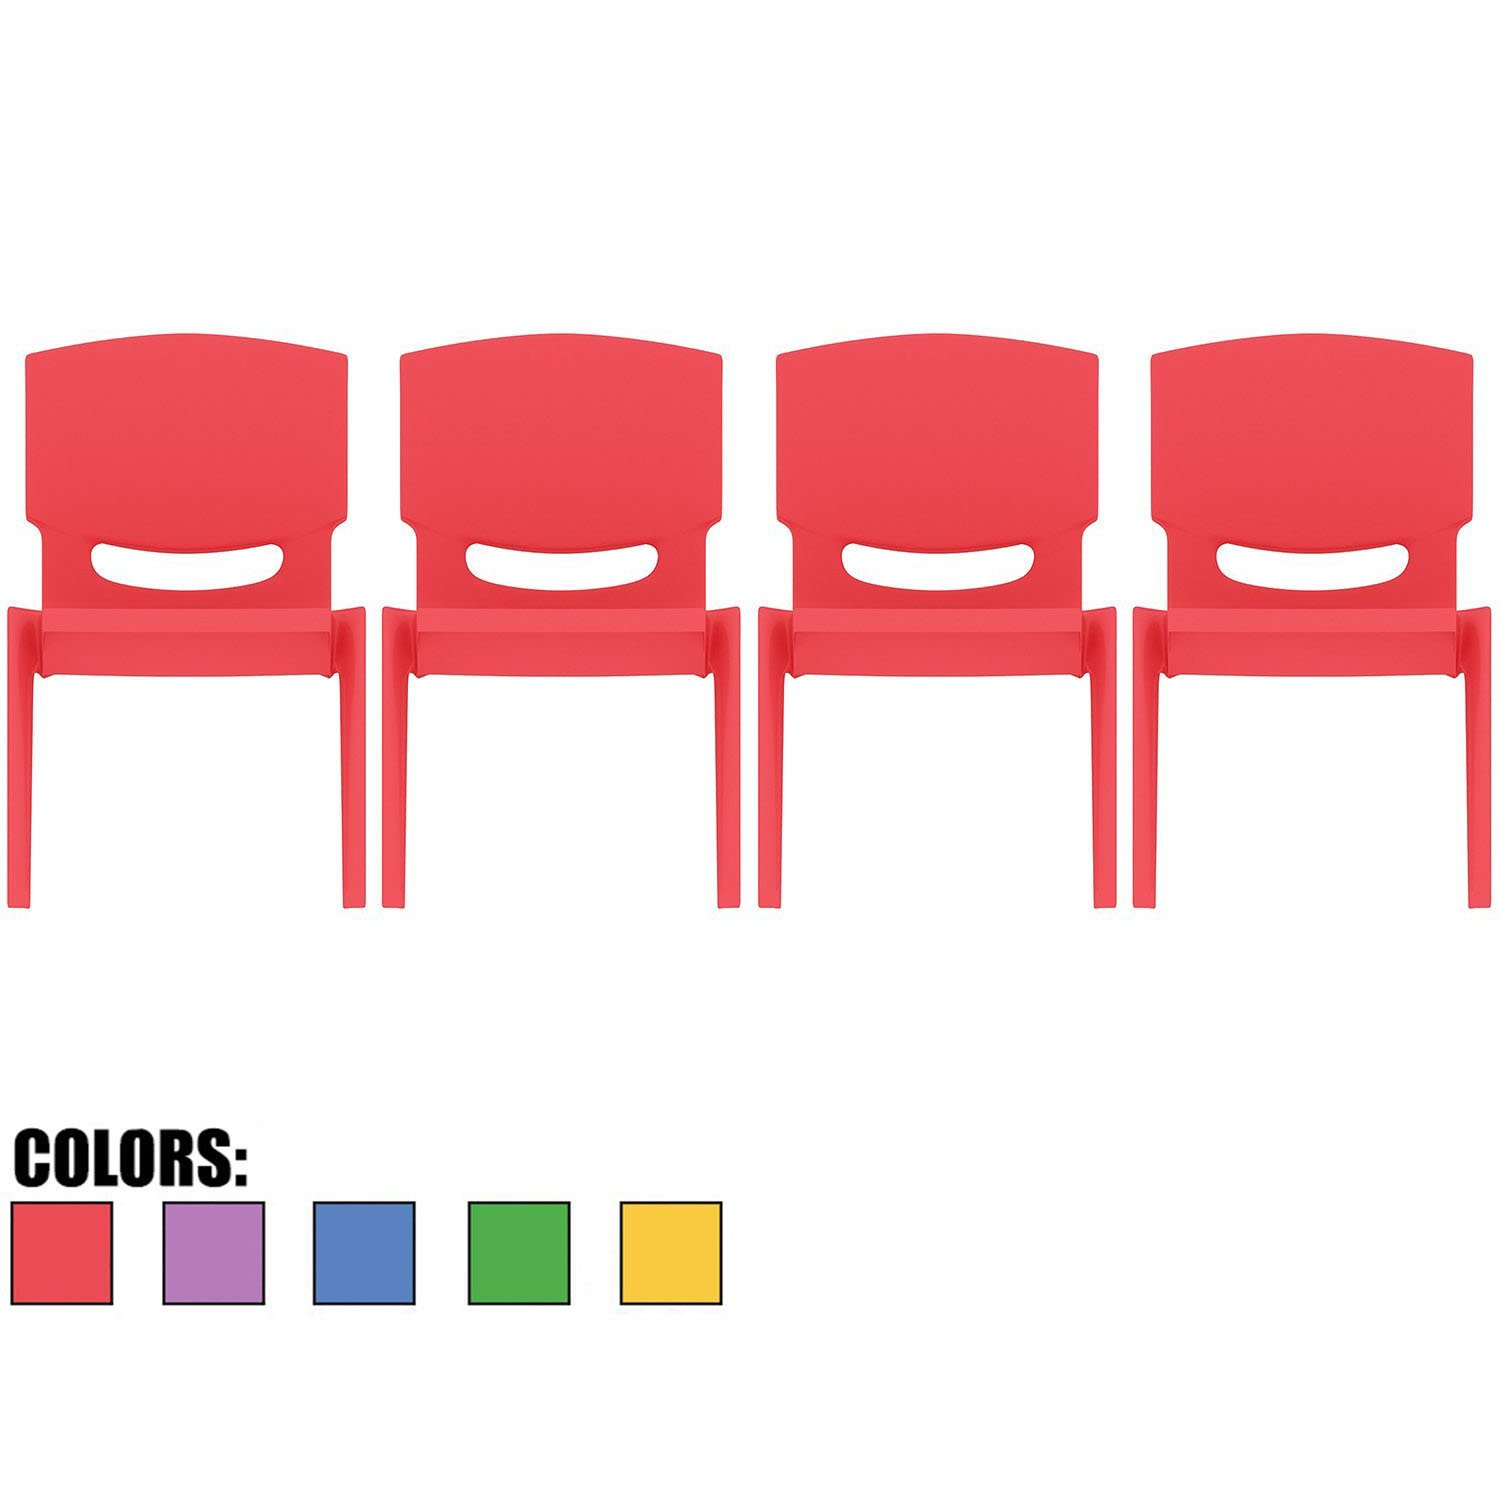 2xhome - Set of Four (4) - Red - Kids Size Plastic Side Chair 12'' Seat Height Red Childs Chair Childrens Room School Chairs No Arm Arms Armless Molded Plastic Seat Stackable